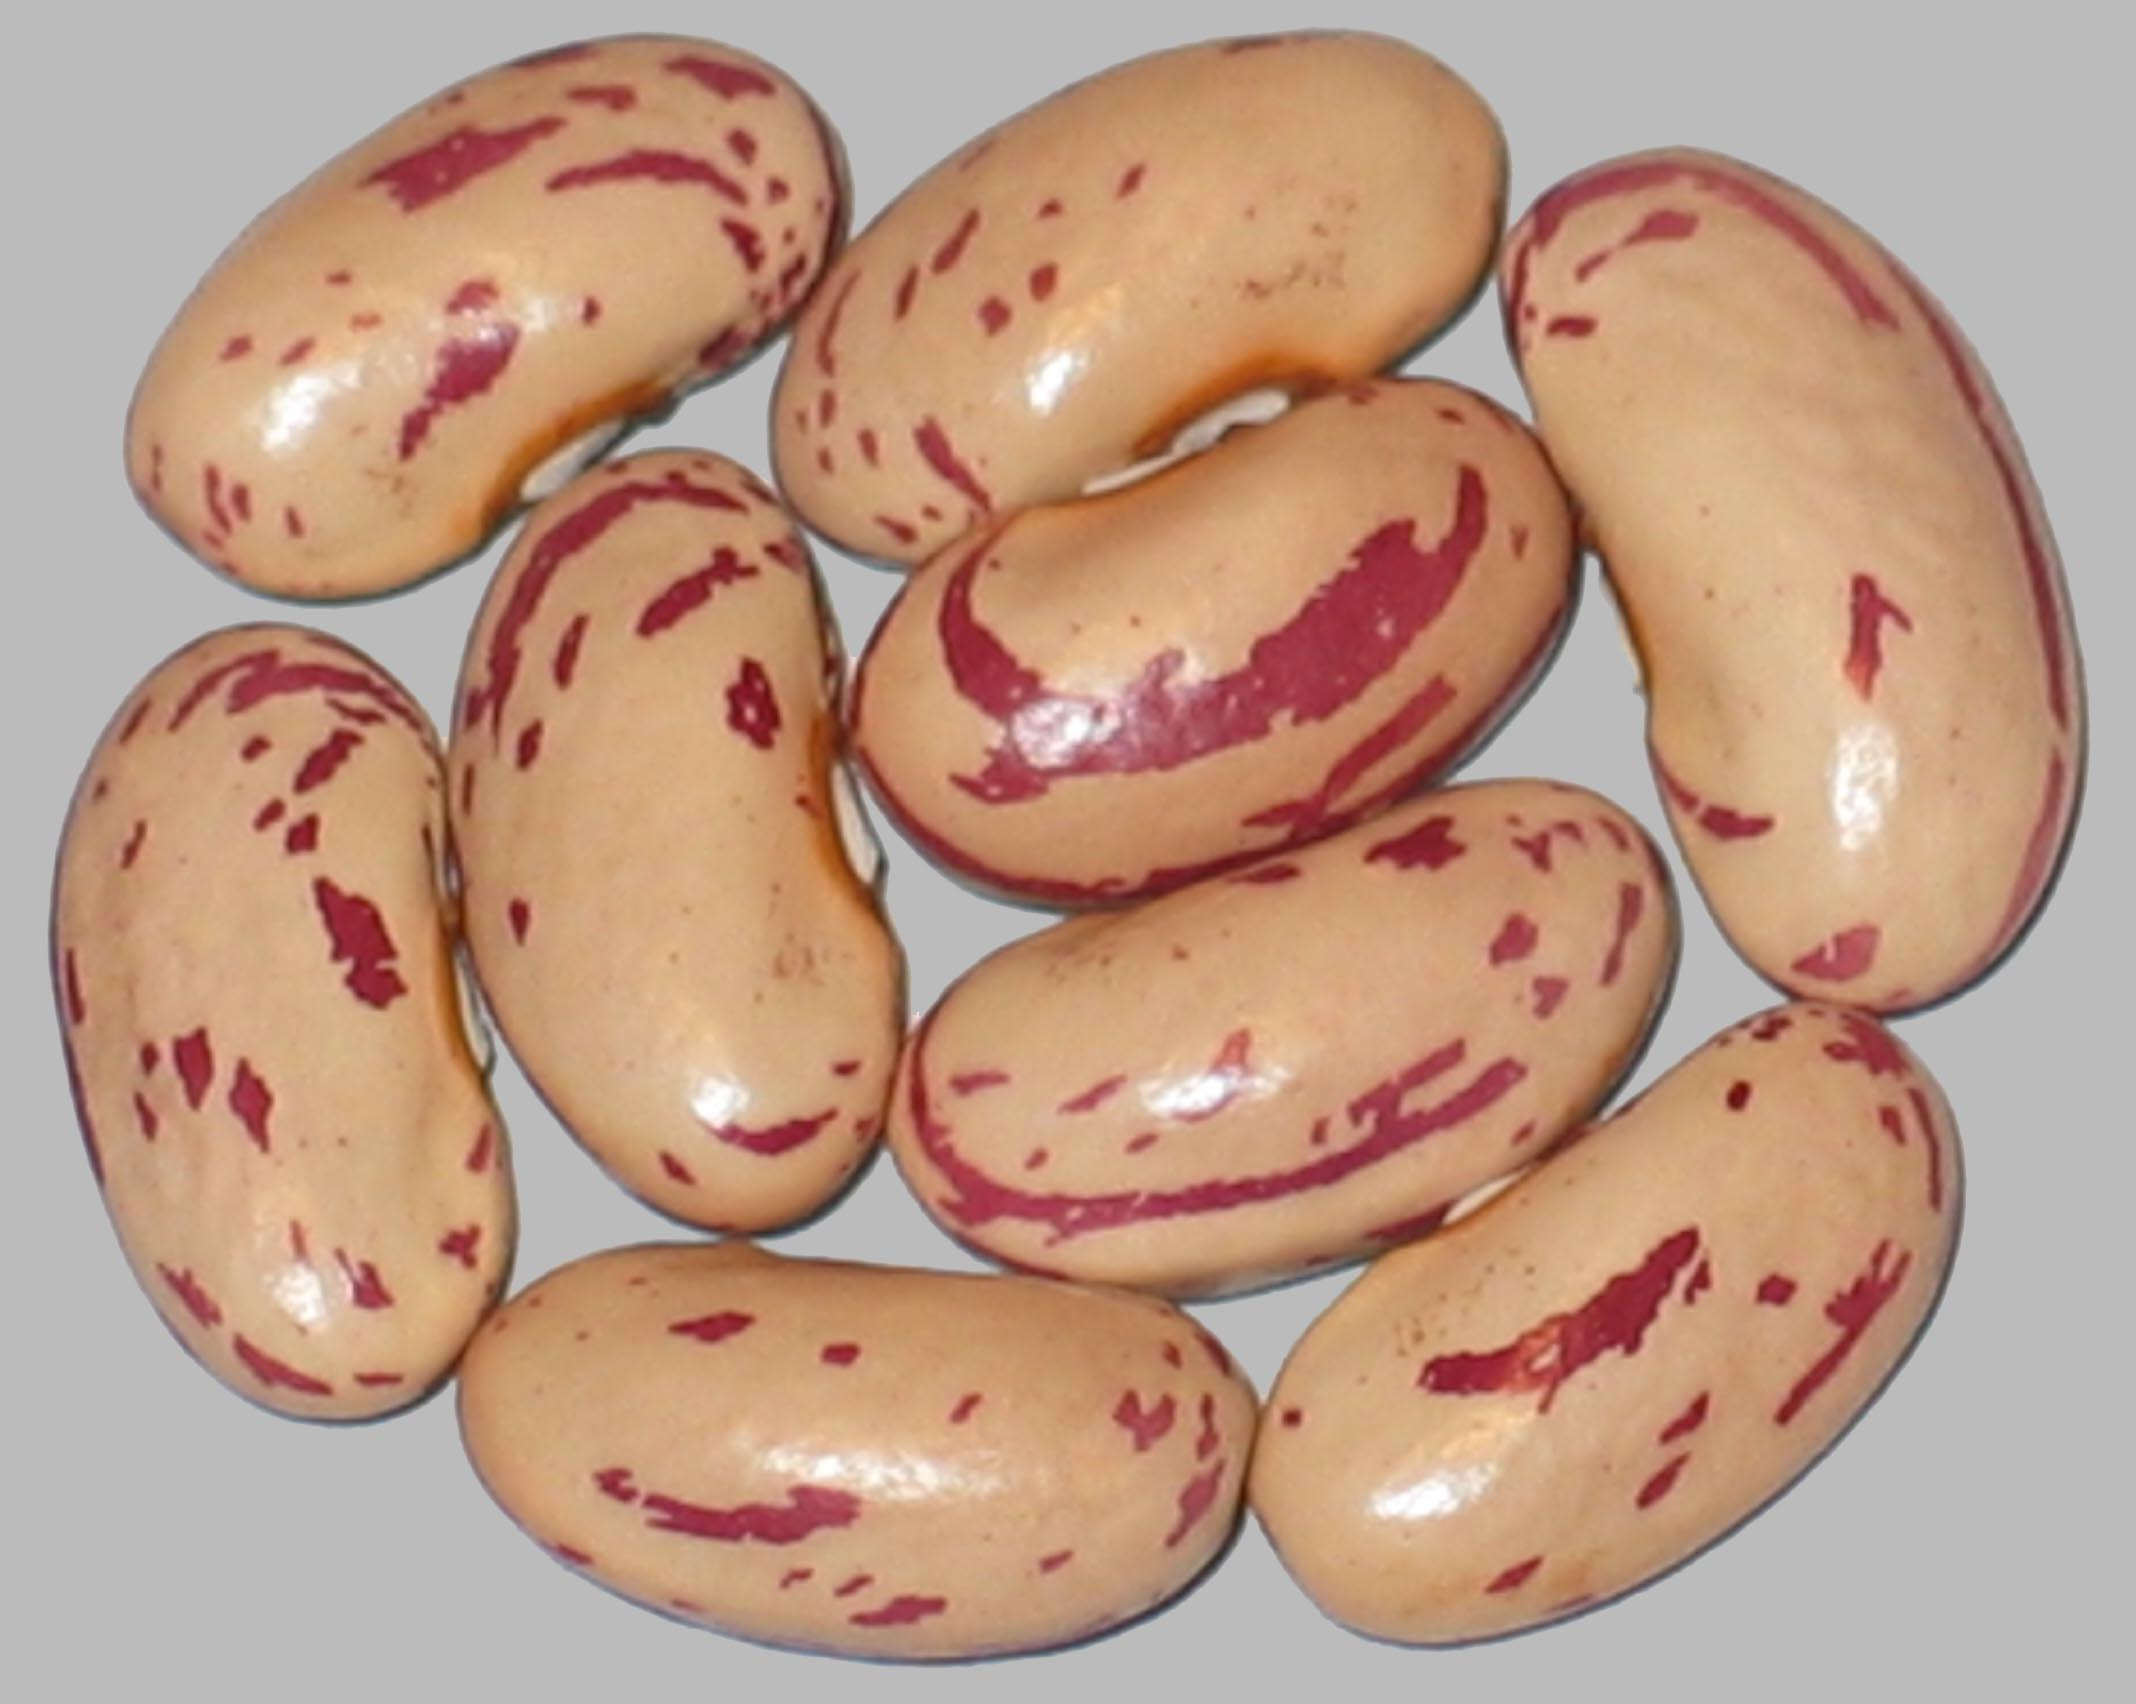 image of Irene's Russian beans